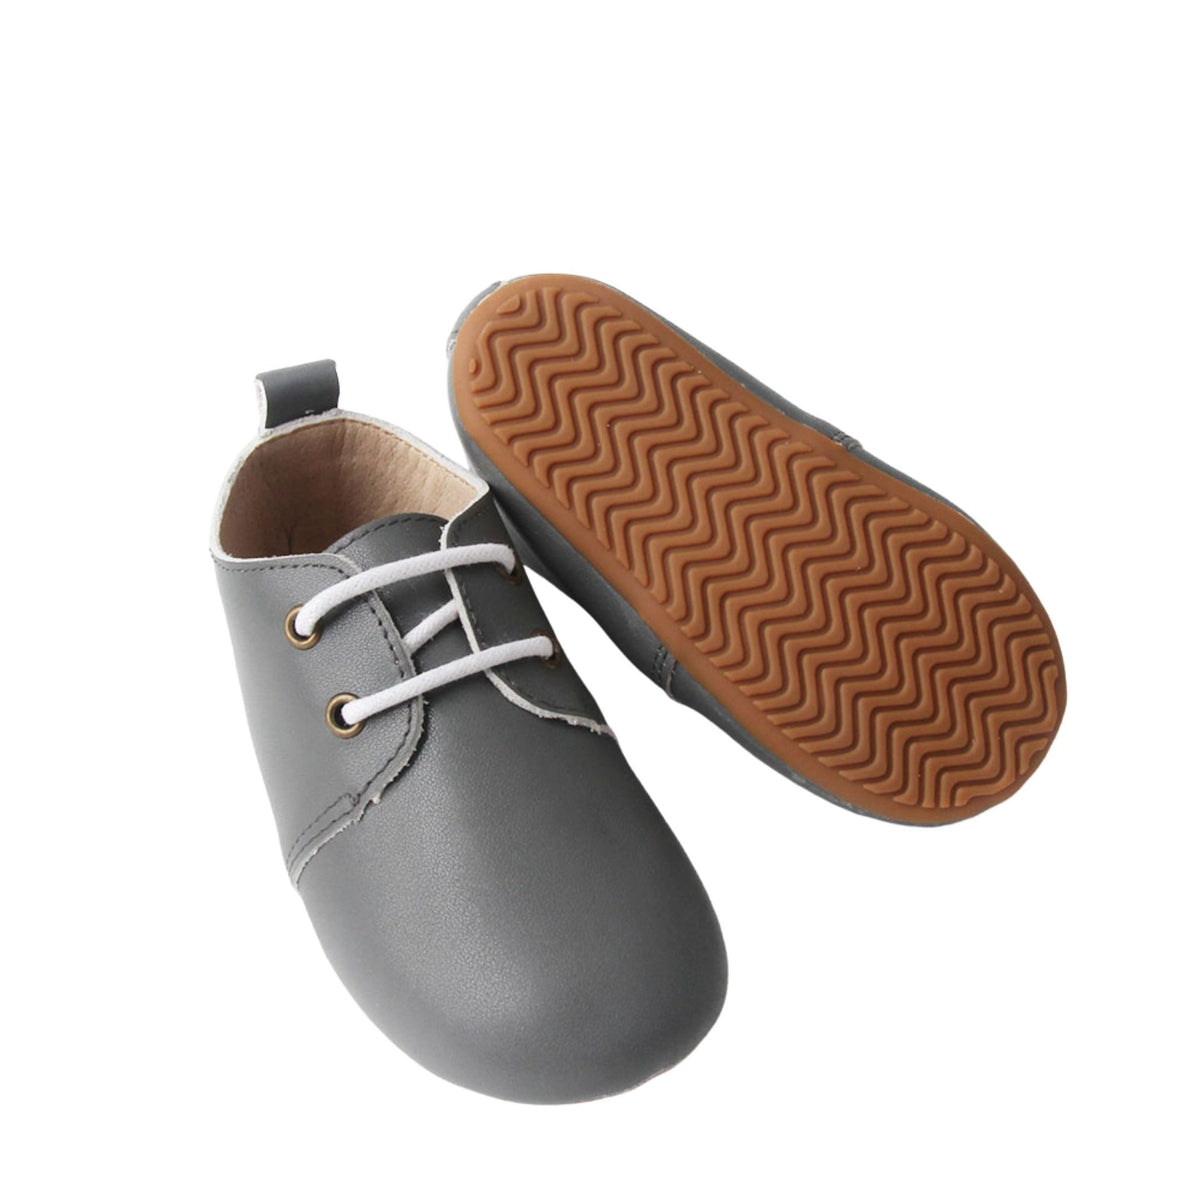 Grey Oxford Grip Sole Shoes with laces sole view